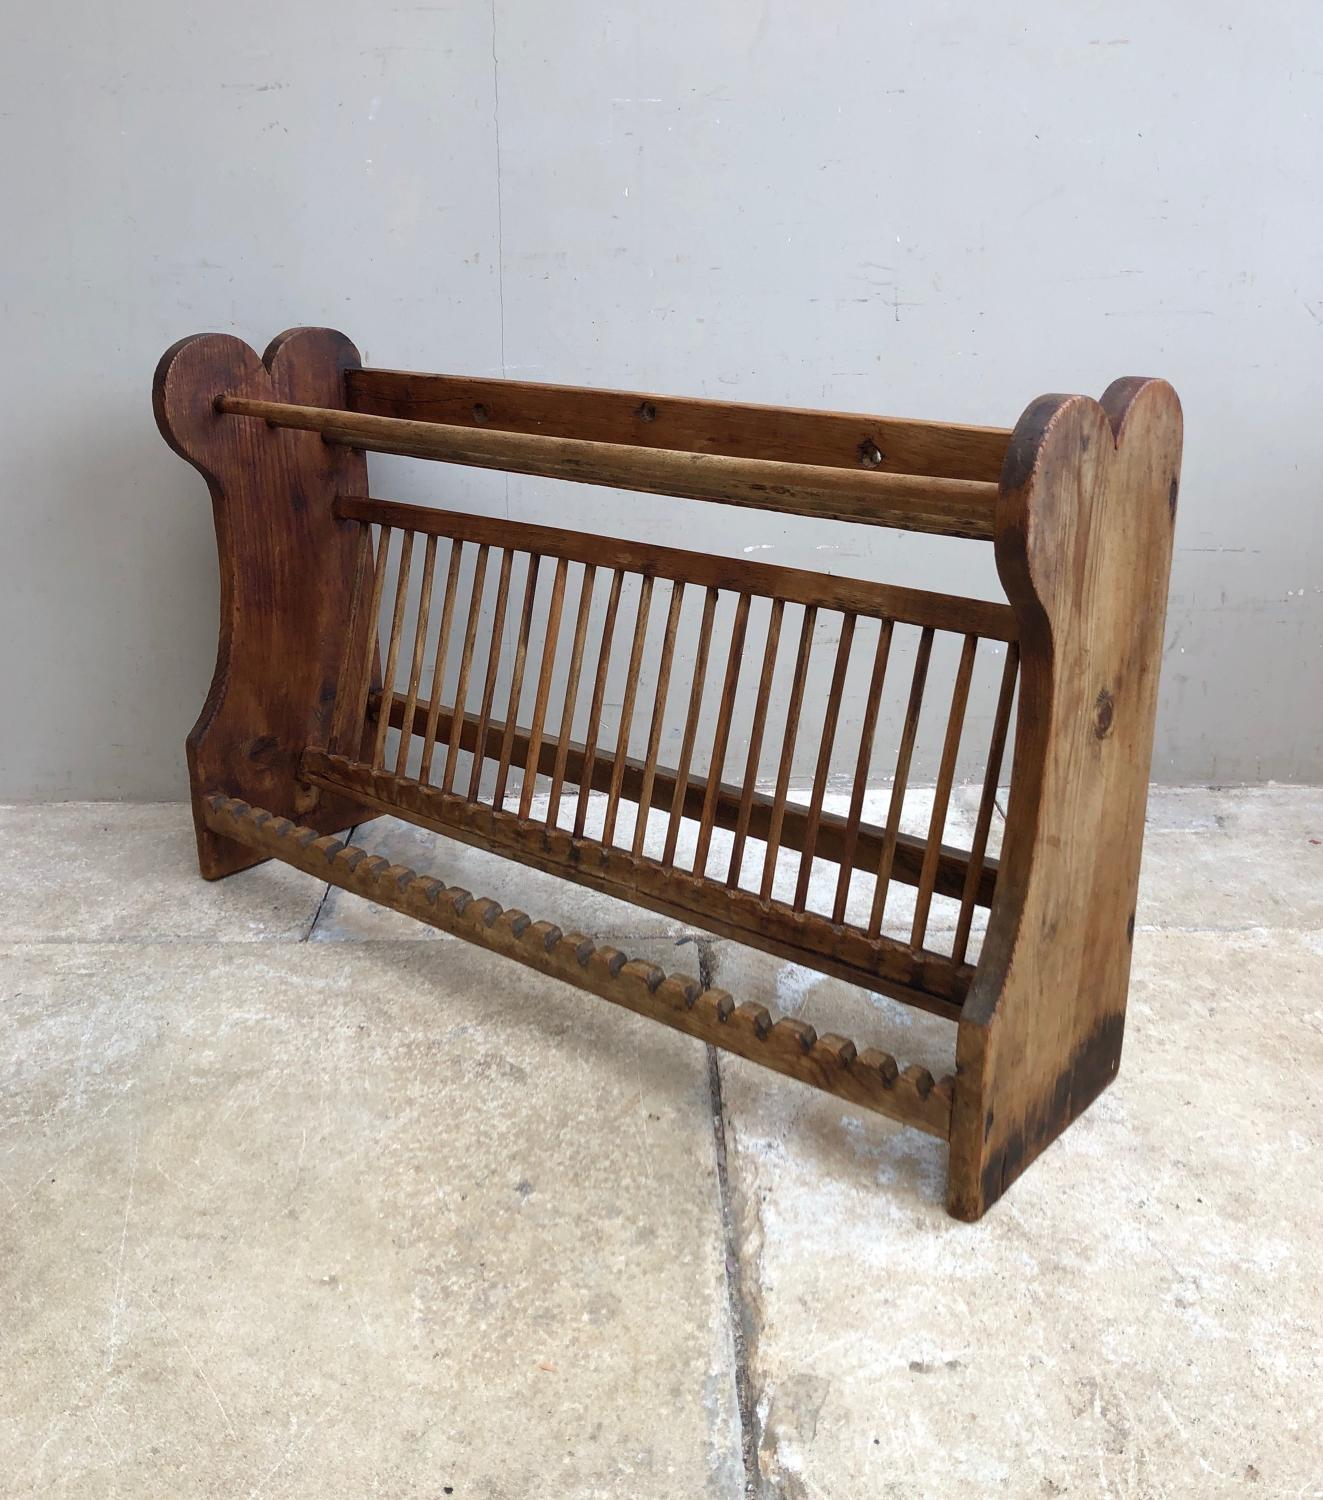 Edwardian Pine Single Tier Plate Rack - Larger than Average